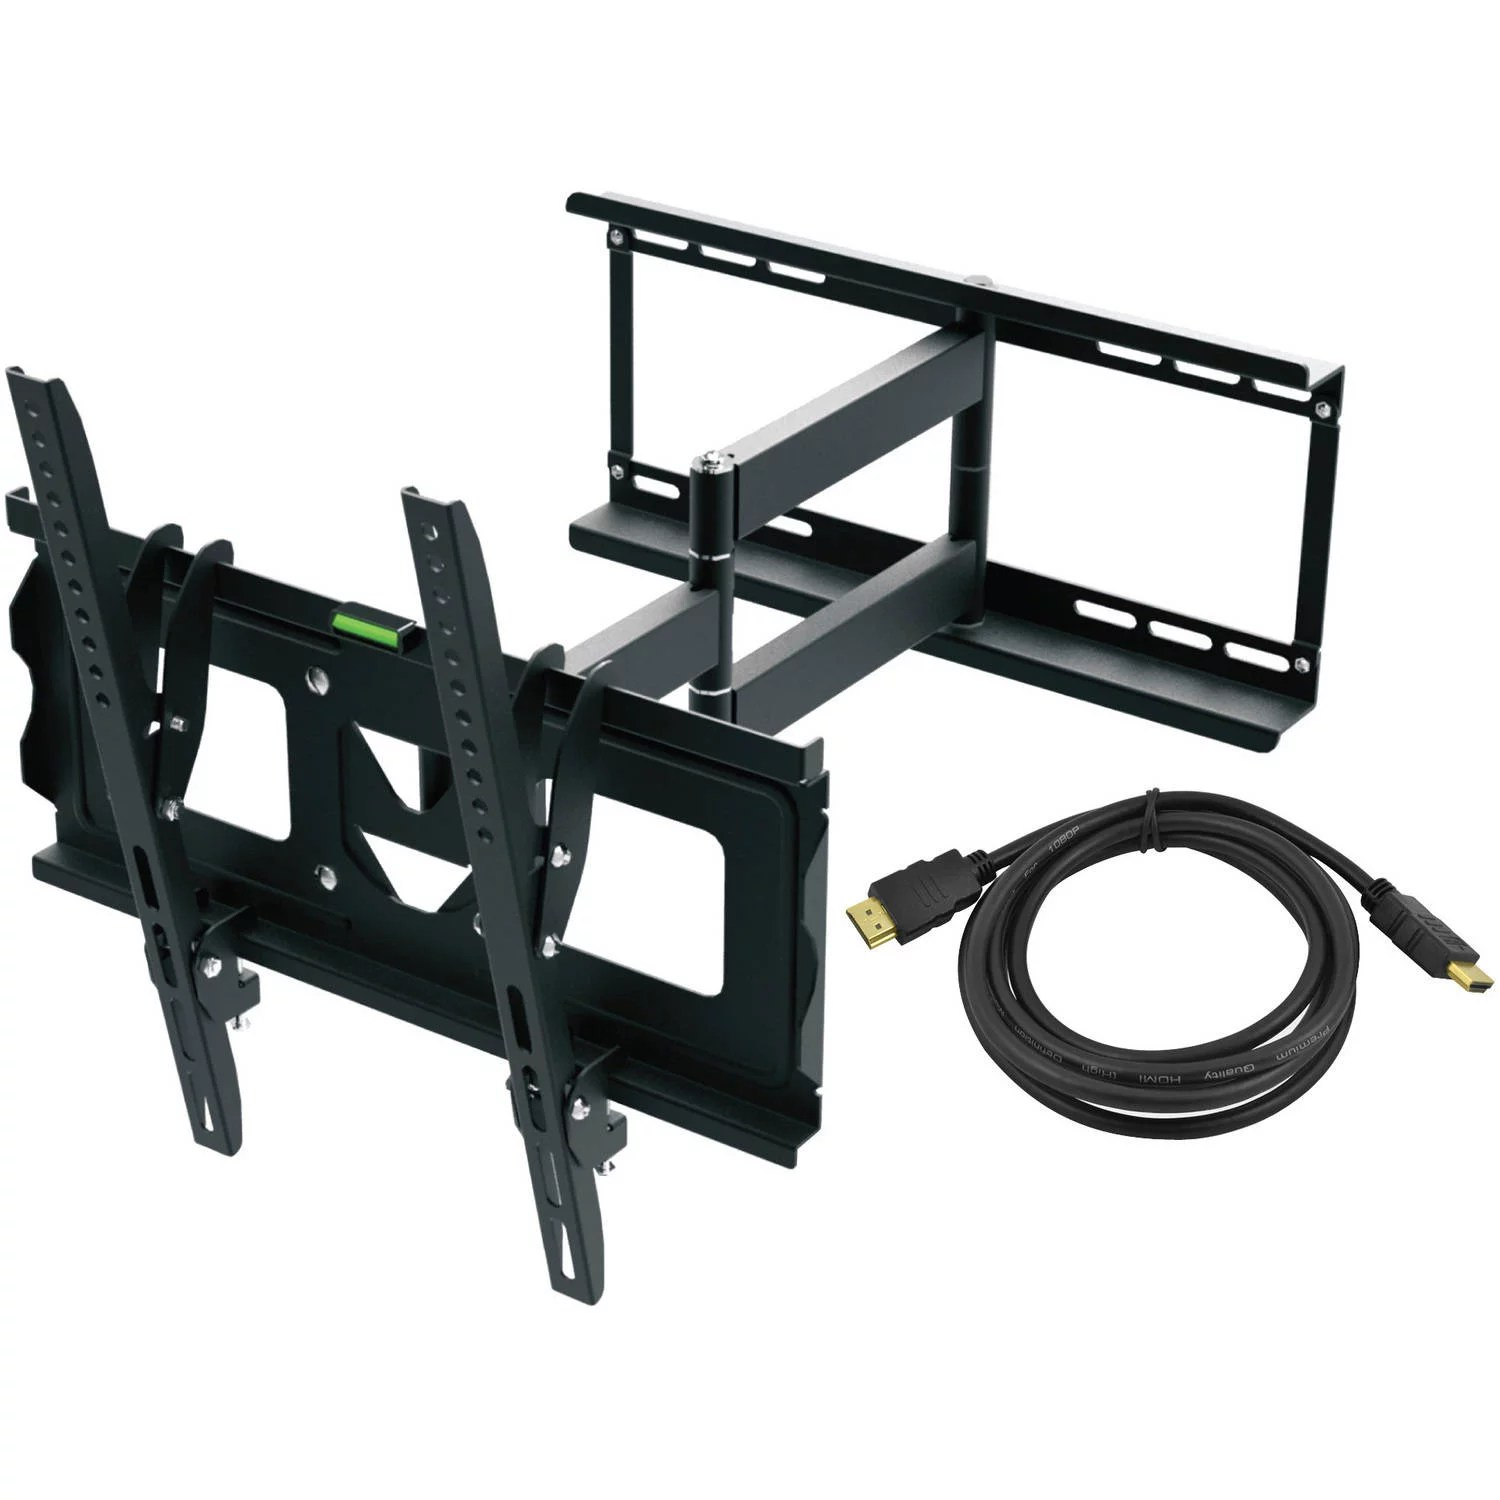 ematic full motion tv wall mount kit with hdmi cable for 19 70 displays walmart com